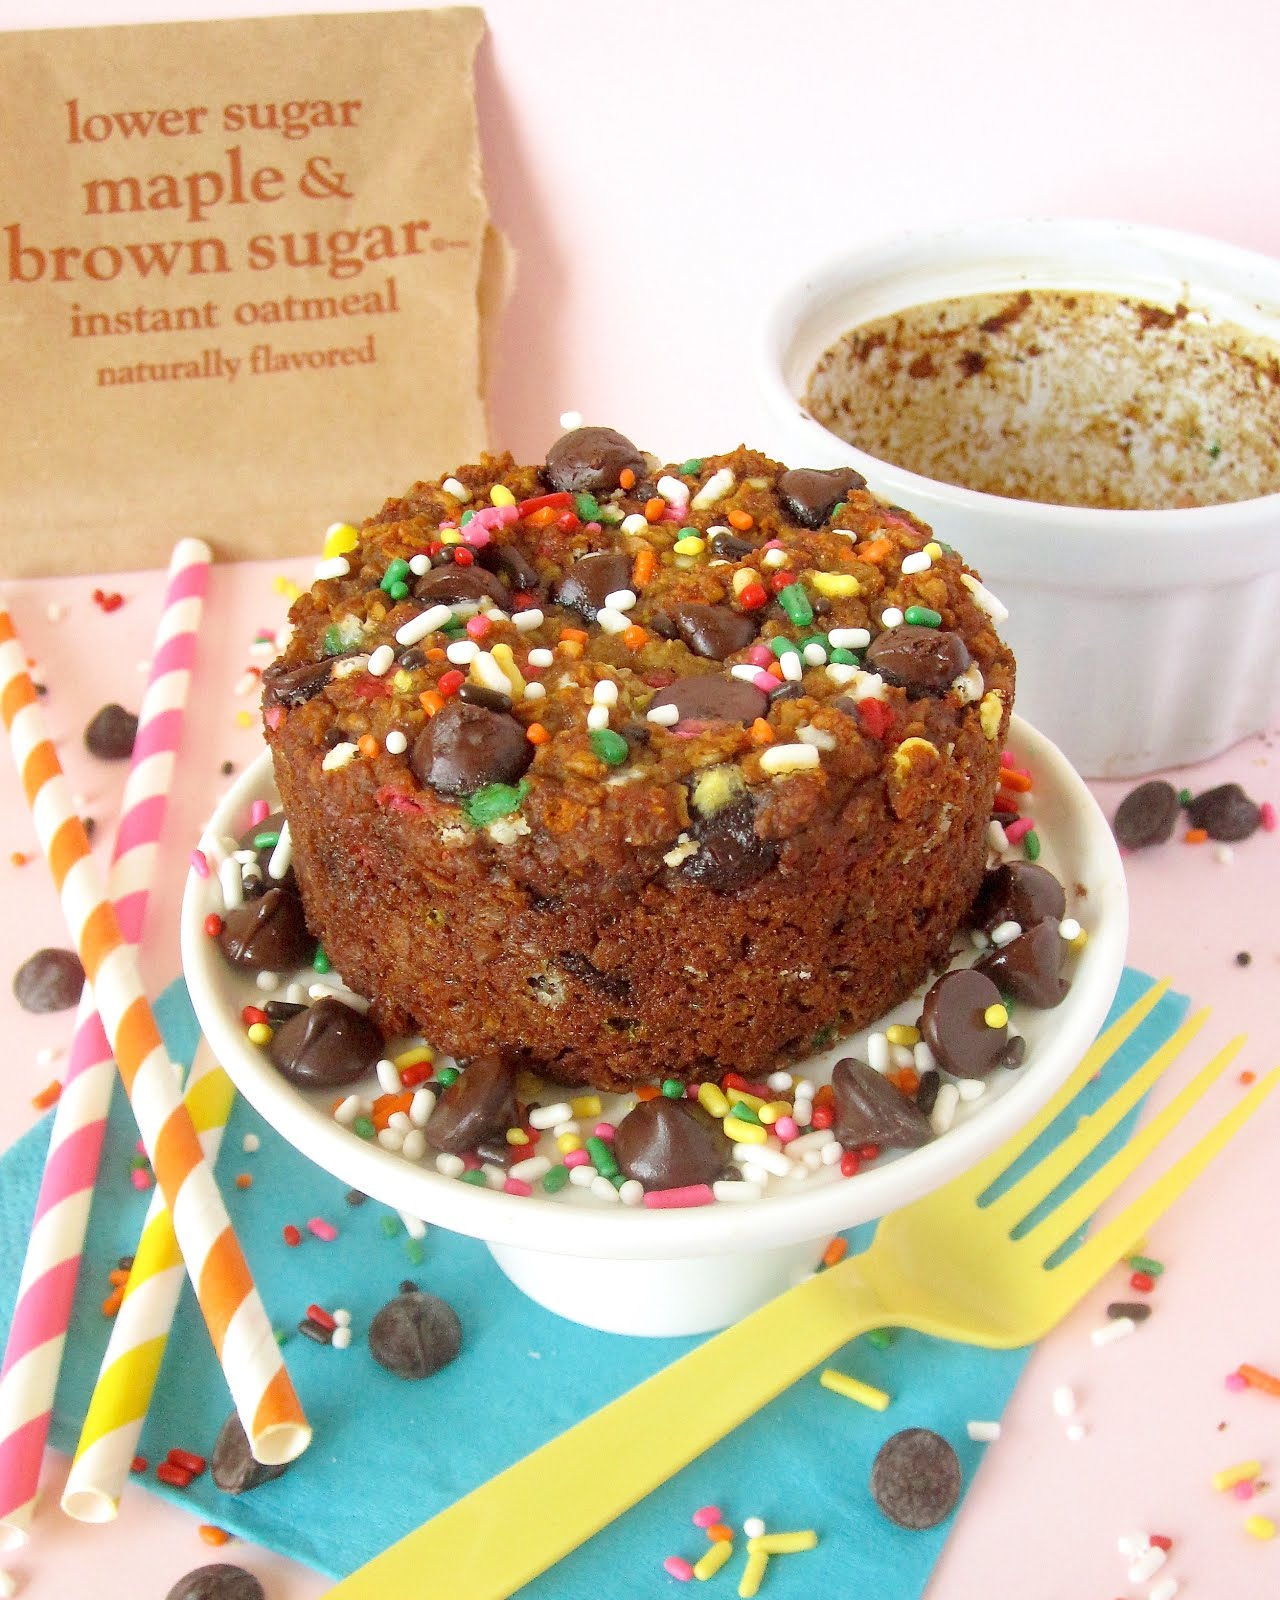 Single Serving Skinny Birthday Cake Baked Oatmeal Egg Free Dairy